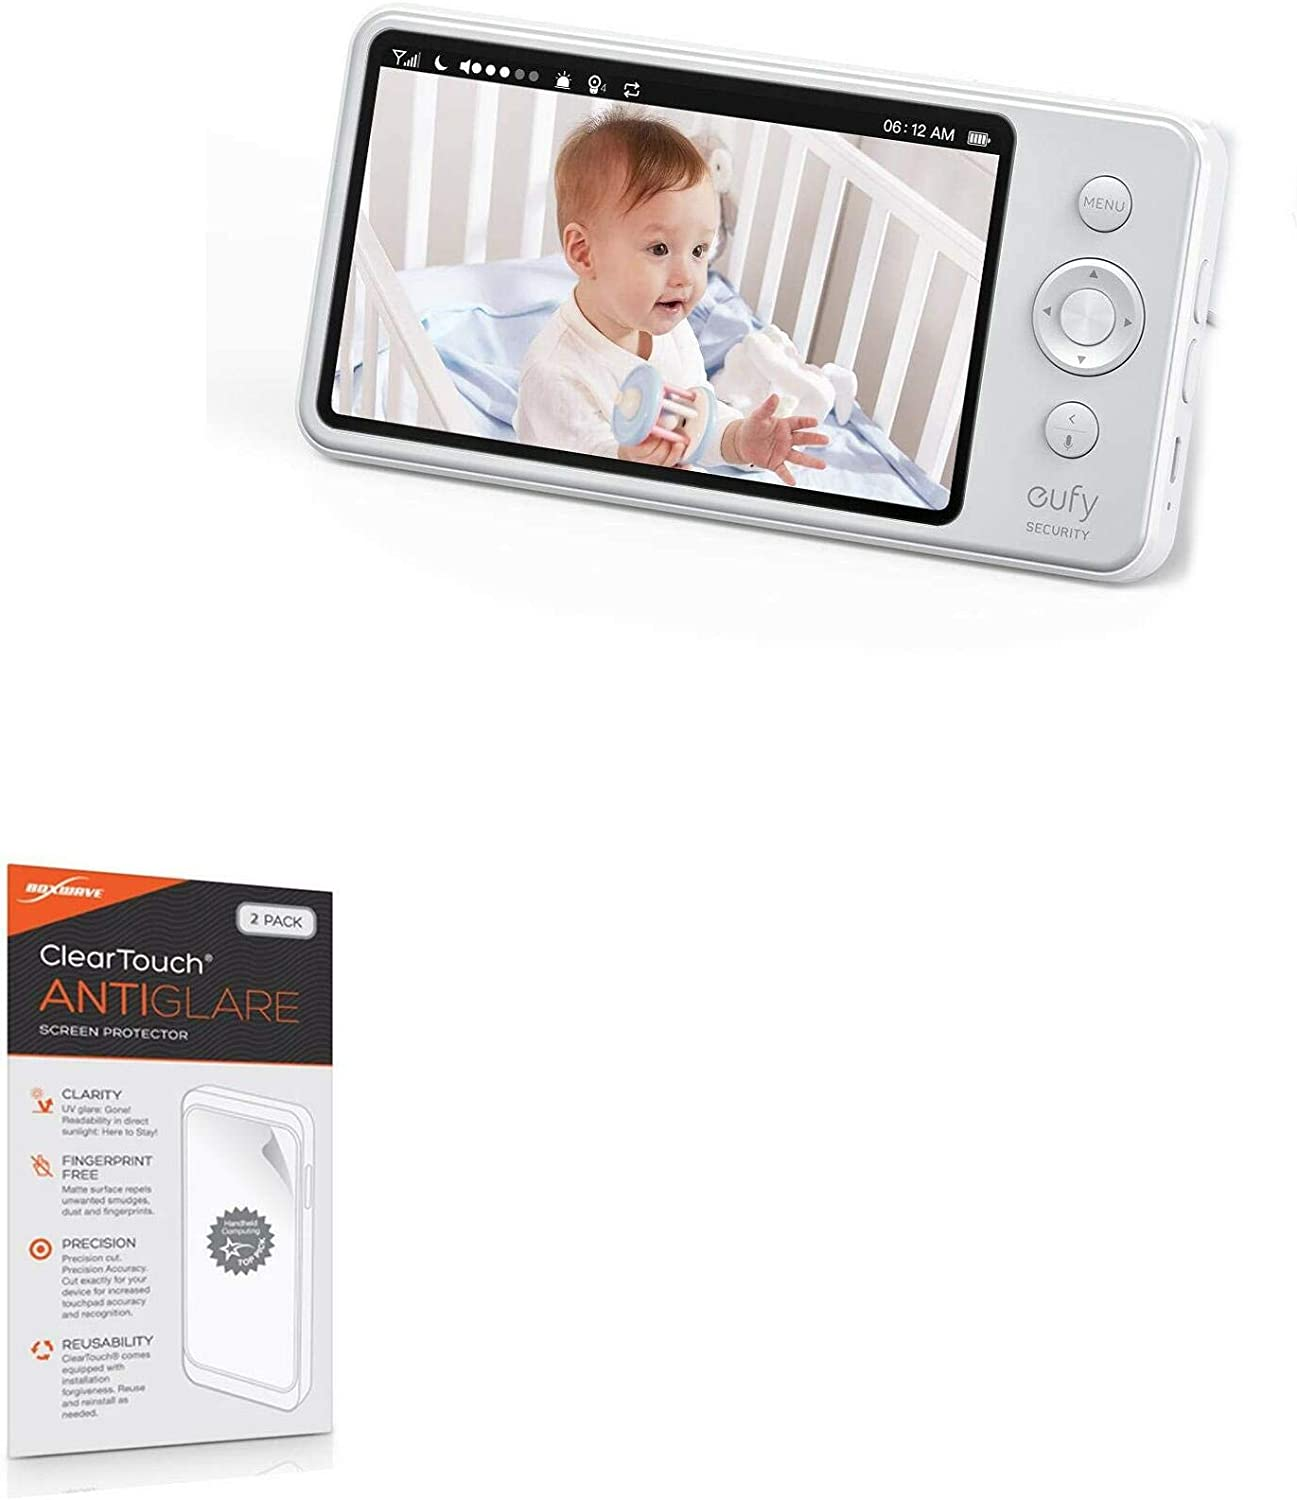 Screen Protector for Eufy 720p Video Baby Monitor (Screen Protector by BoxWave) - ClearTouch Anti-Glare (2-Pack), Anti-Fingerprint Matte Film Skin for Eufy 720p Video Baby Monitor